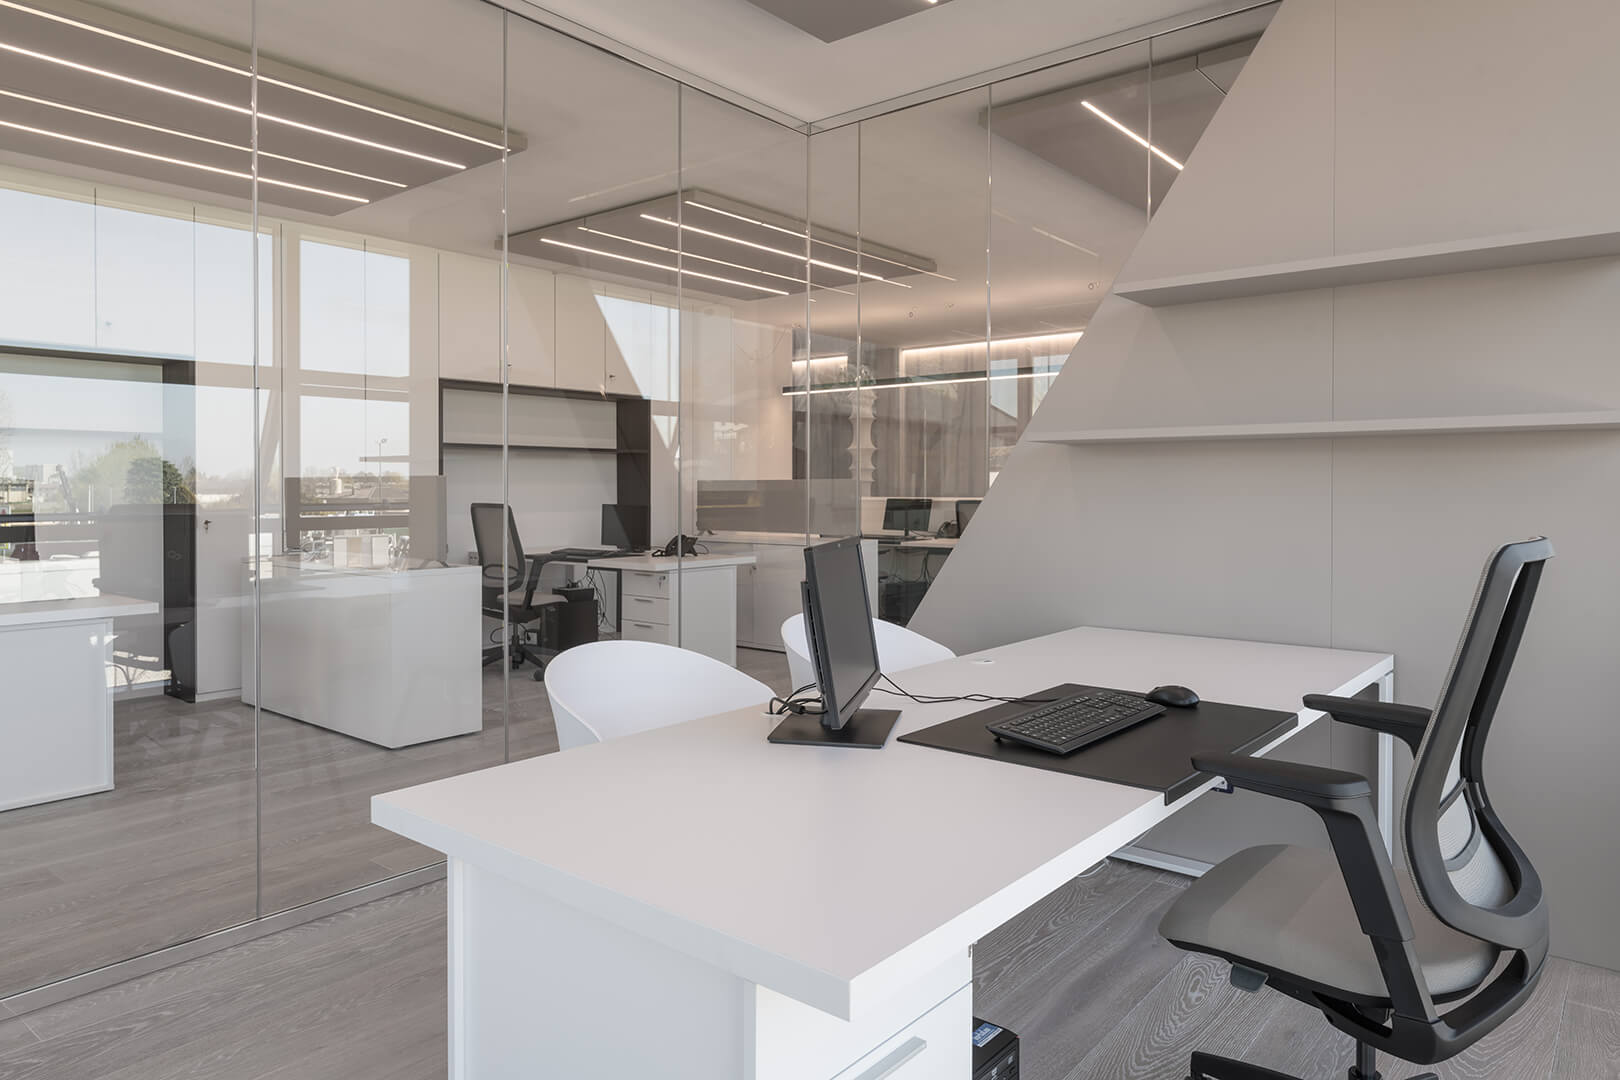 Caruso Acoustic Products For An Open Space Office Treviso Italy Caruso Acoustic